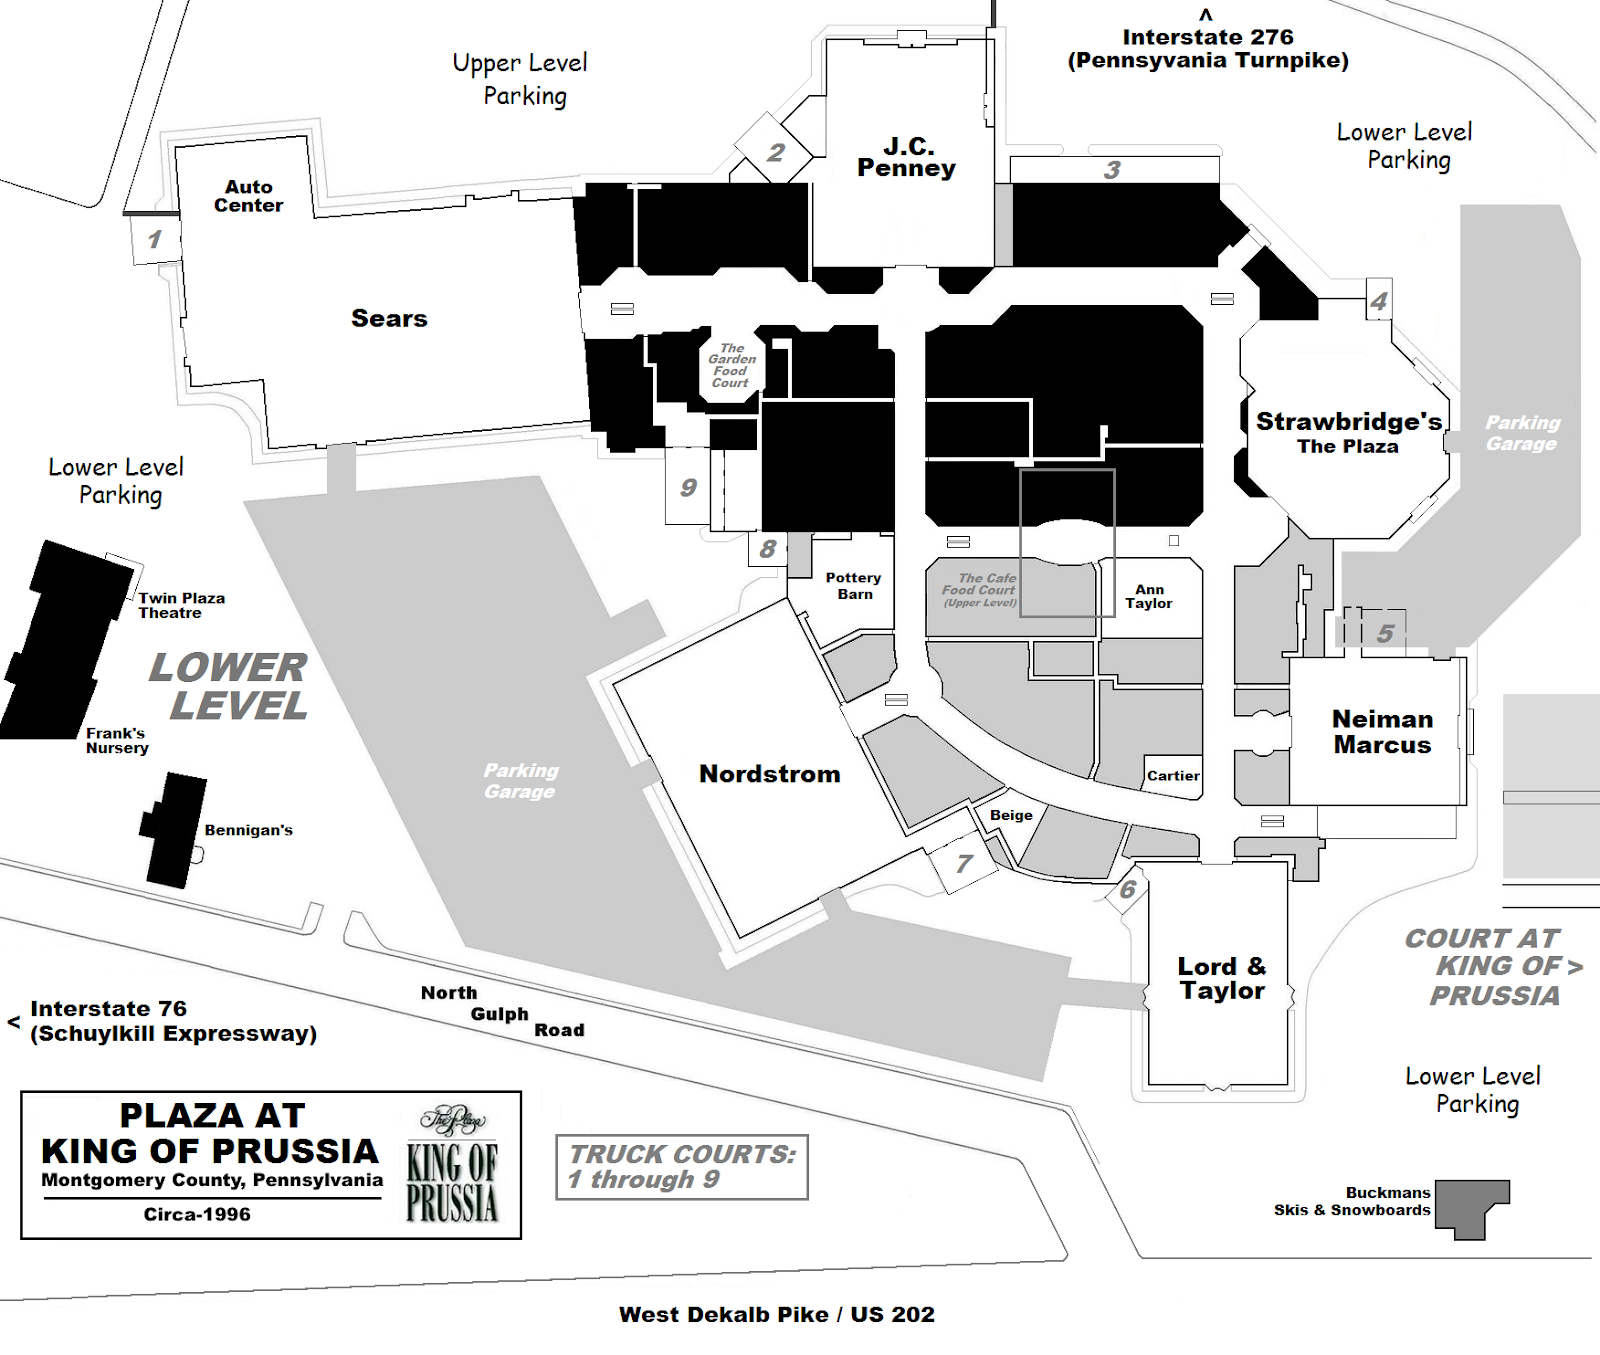 MALL HALL OF FAME: April 2007 King Of Prussia Mall Store Map on orange park mall store map, tucson mall store map, indian river mall store map, solomon pond mall store map, exton mall store map, west oaks mall store map, mall of america water park map, freehold raceway mall store map, towson town center store map, franklin park mall store map, short pump town center store map, the grove store map, miller hill mall store map, eagan outlet mall store map, scottsdale fashion square store map, mall of new hampshire store map, white marsh mall store map, plymouth meeting mall store map, meridian mall store map,